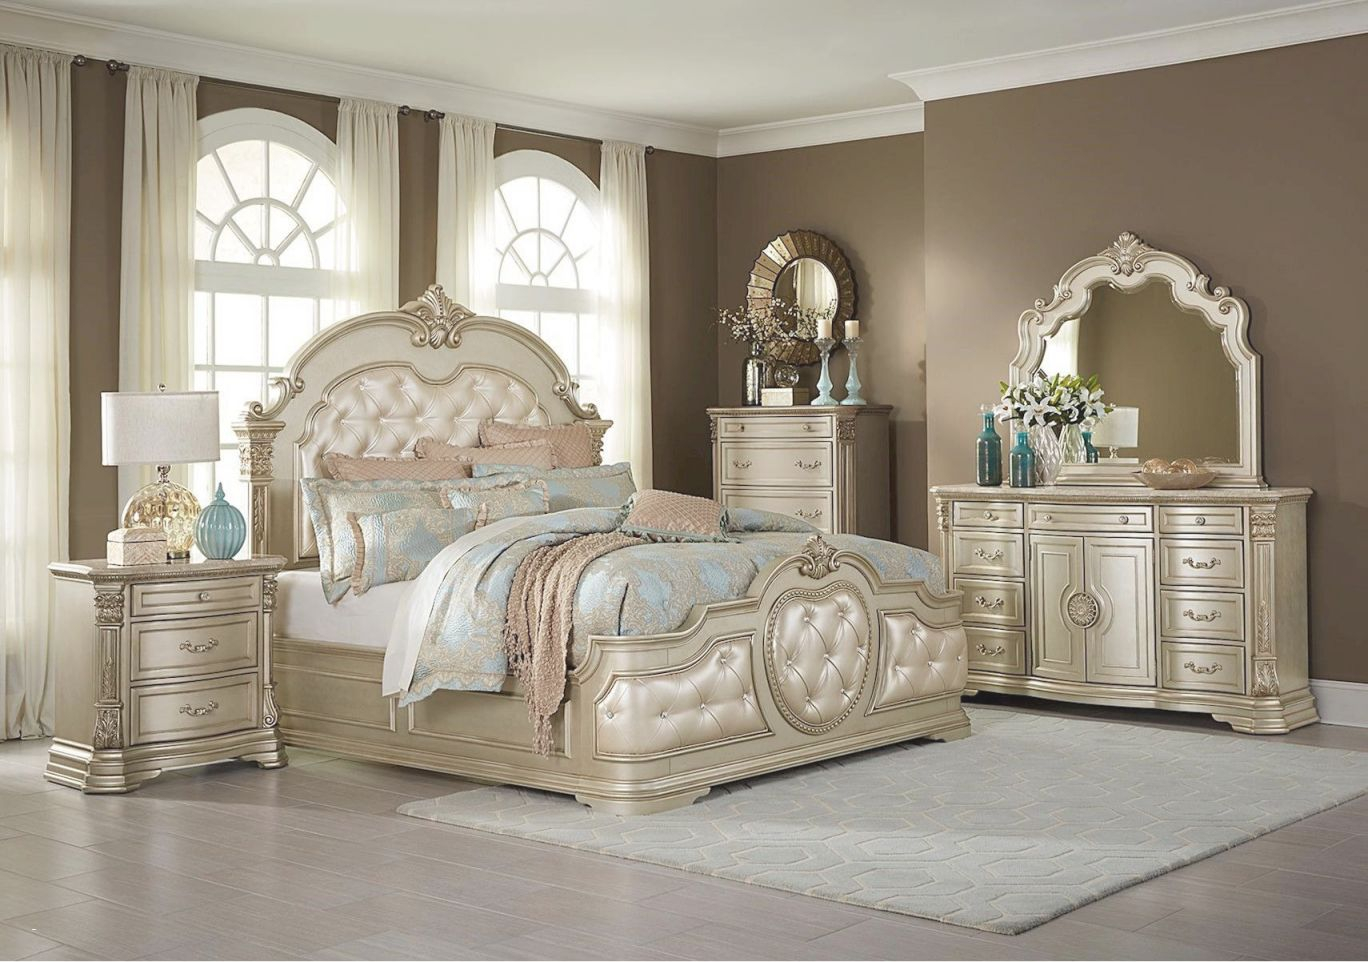 Smart Jordan's Furniture Bedroom Sets — Comforter Sets From in Jordans Furniture Bedroom Sets